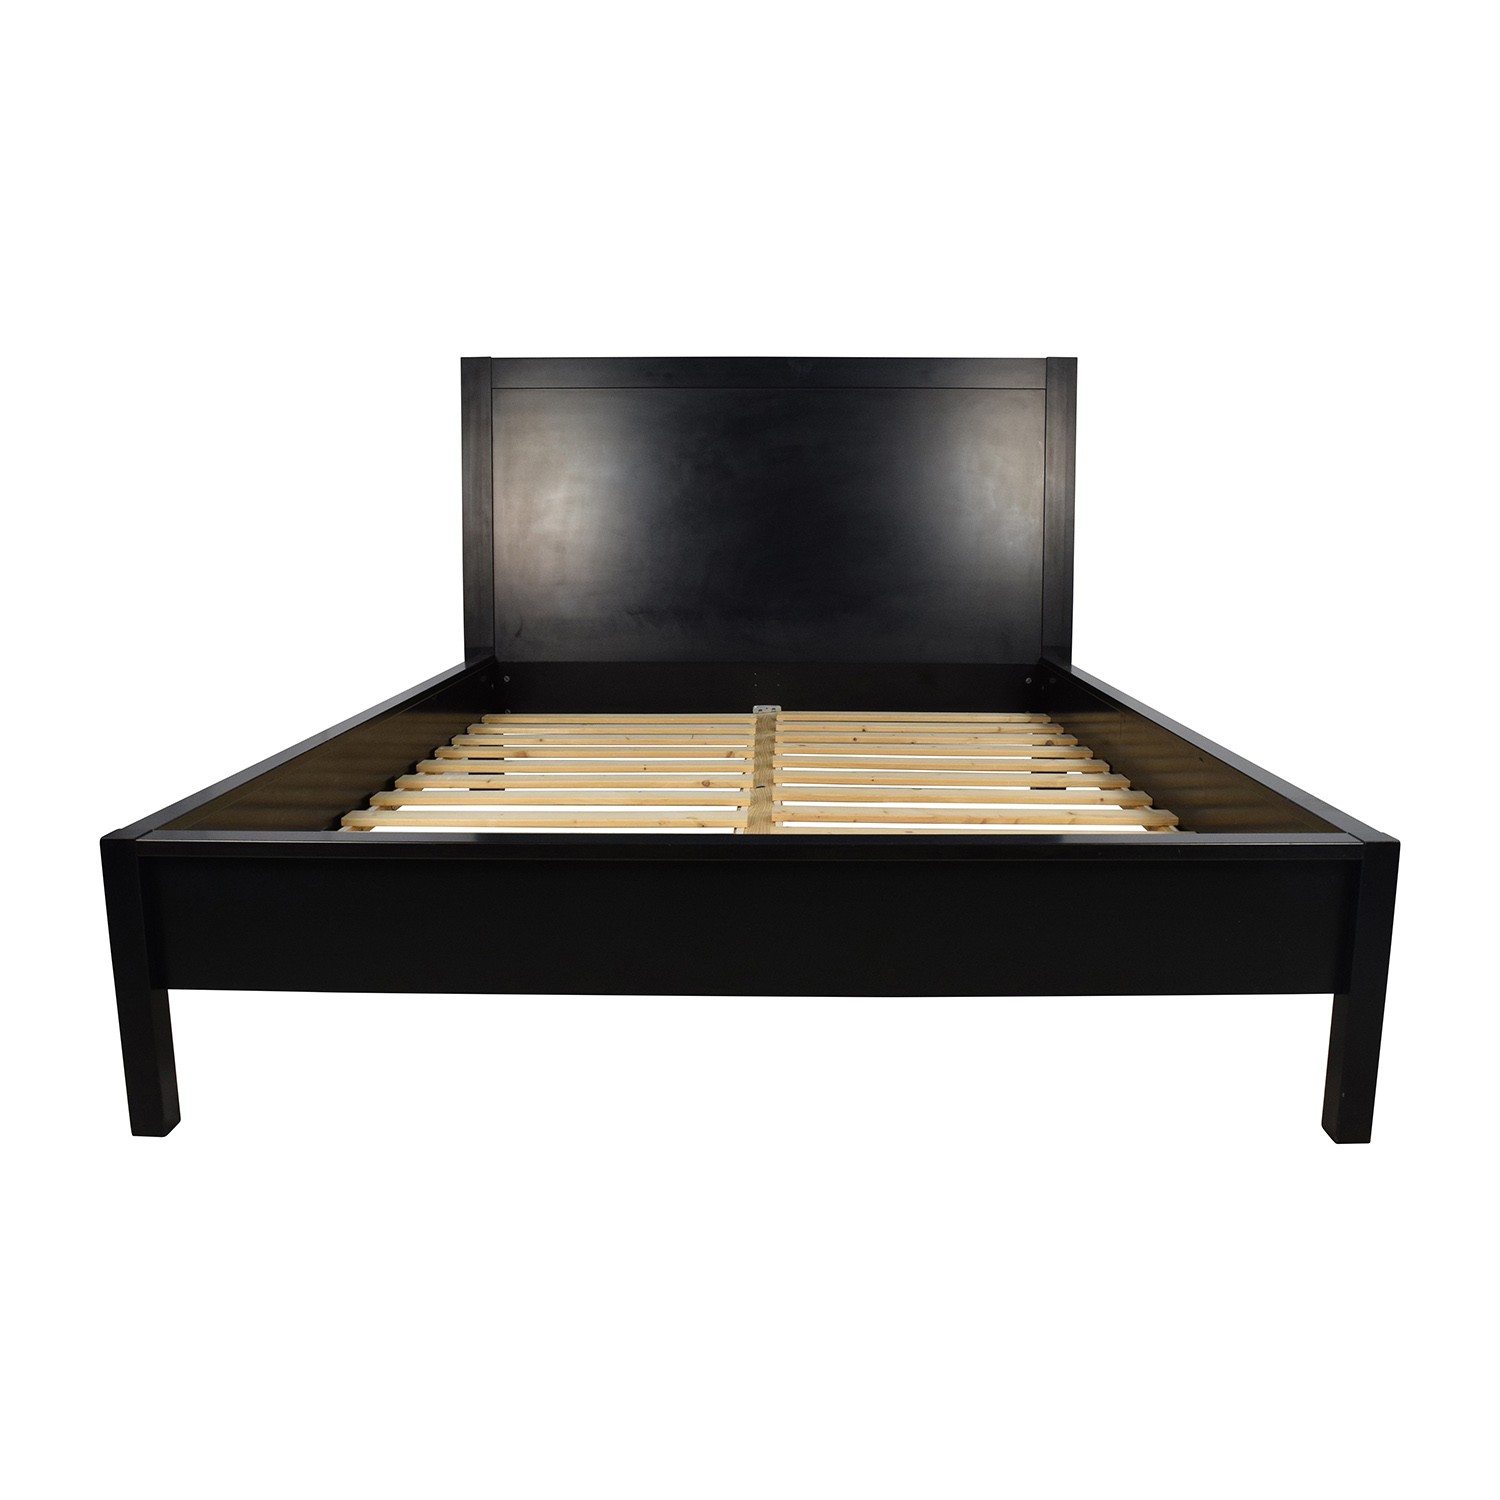 boconcept boconcept black queen bed frame coupon - Queen Bed Frame Black